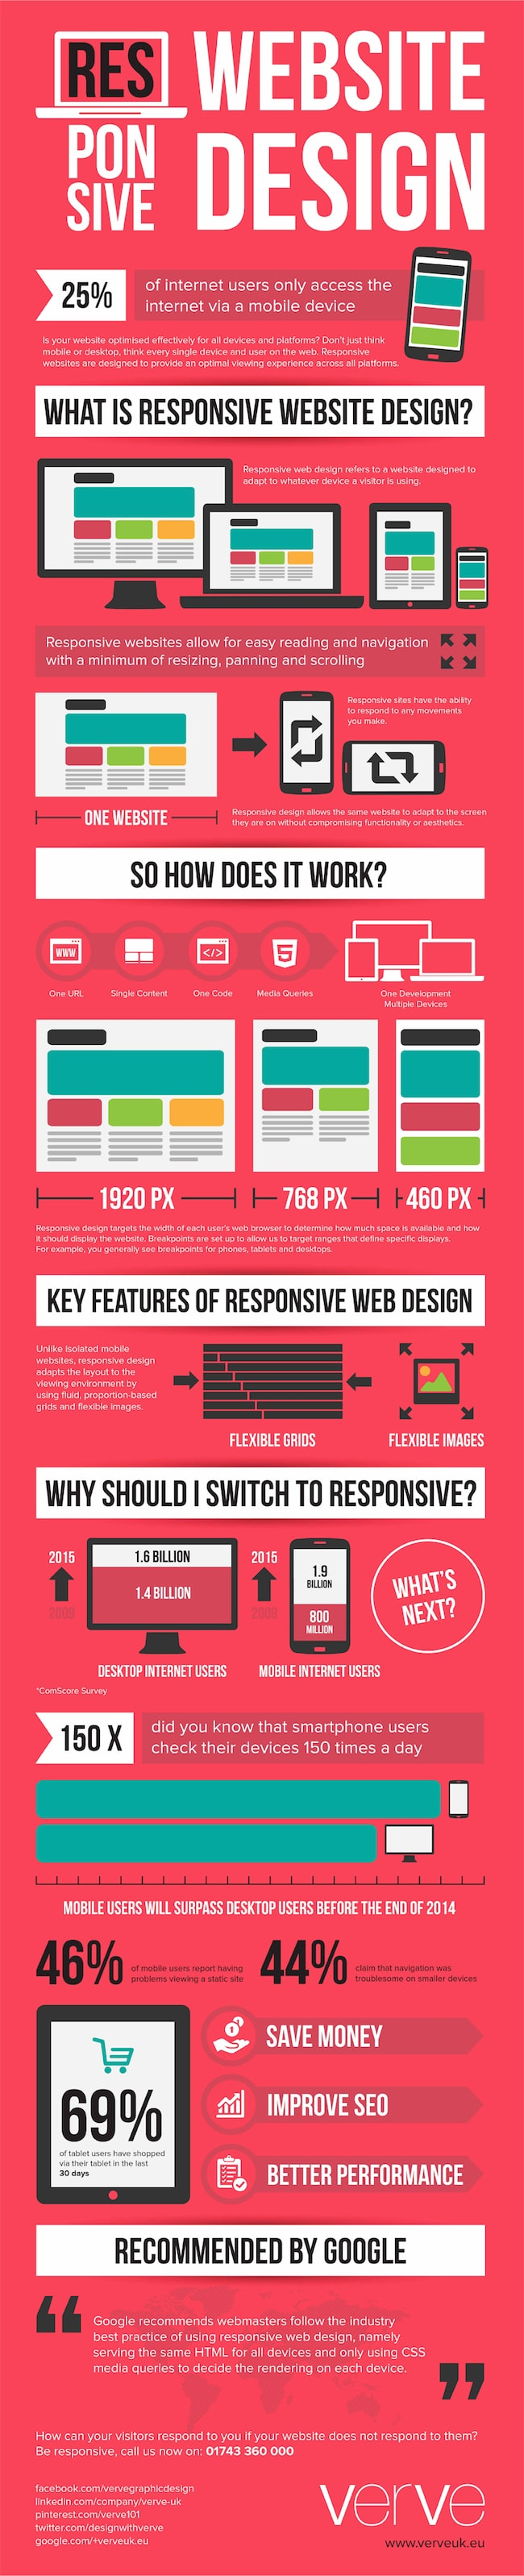 What is Responsive Website Design? How Does Responsive Website design work?